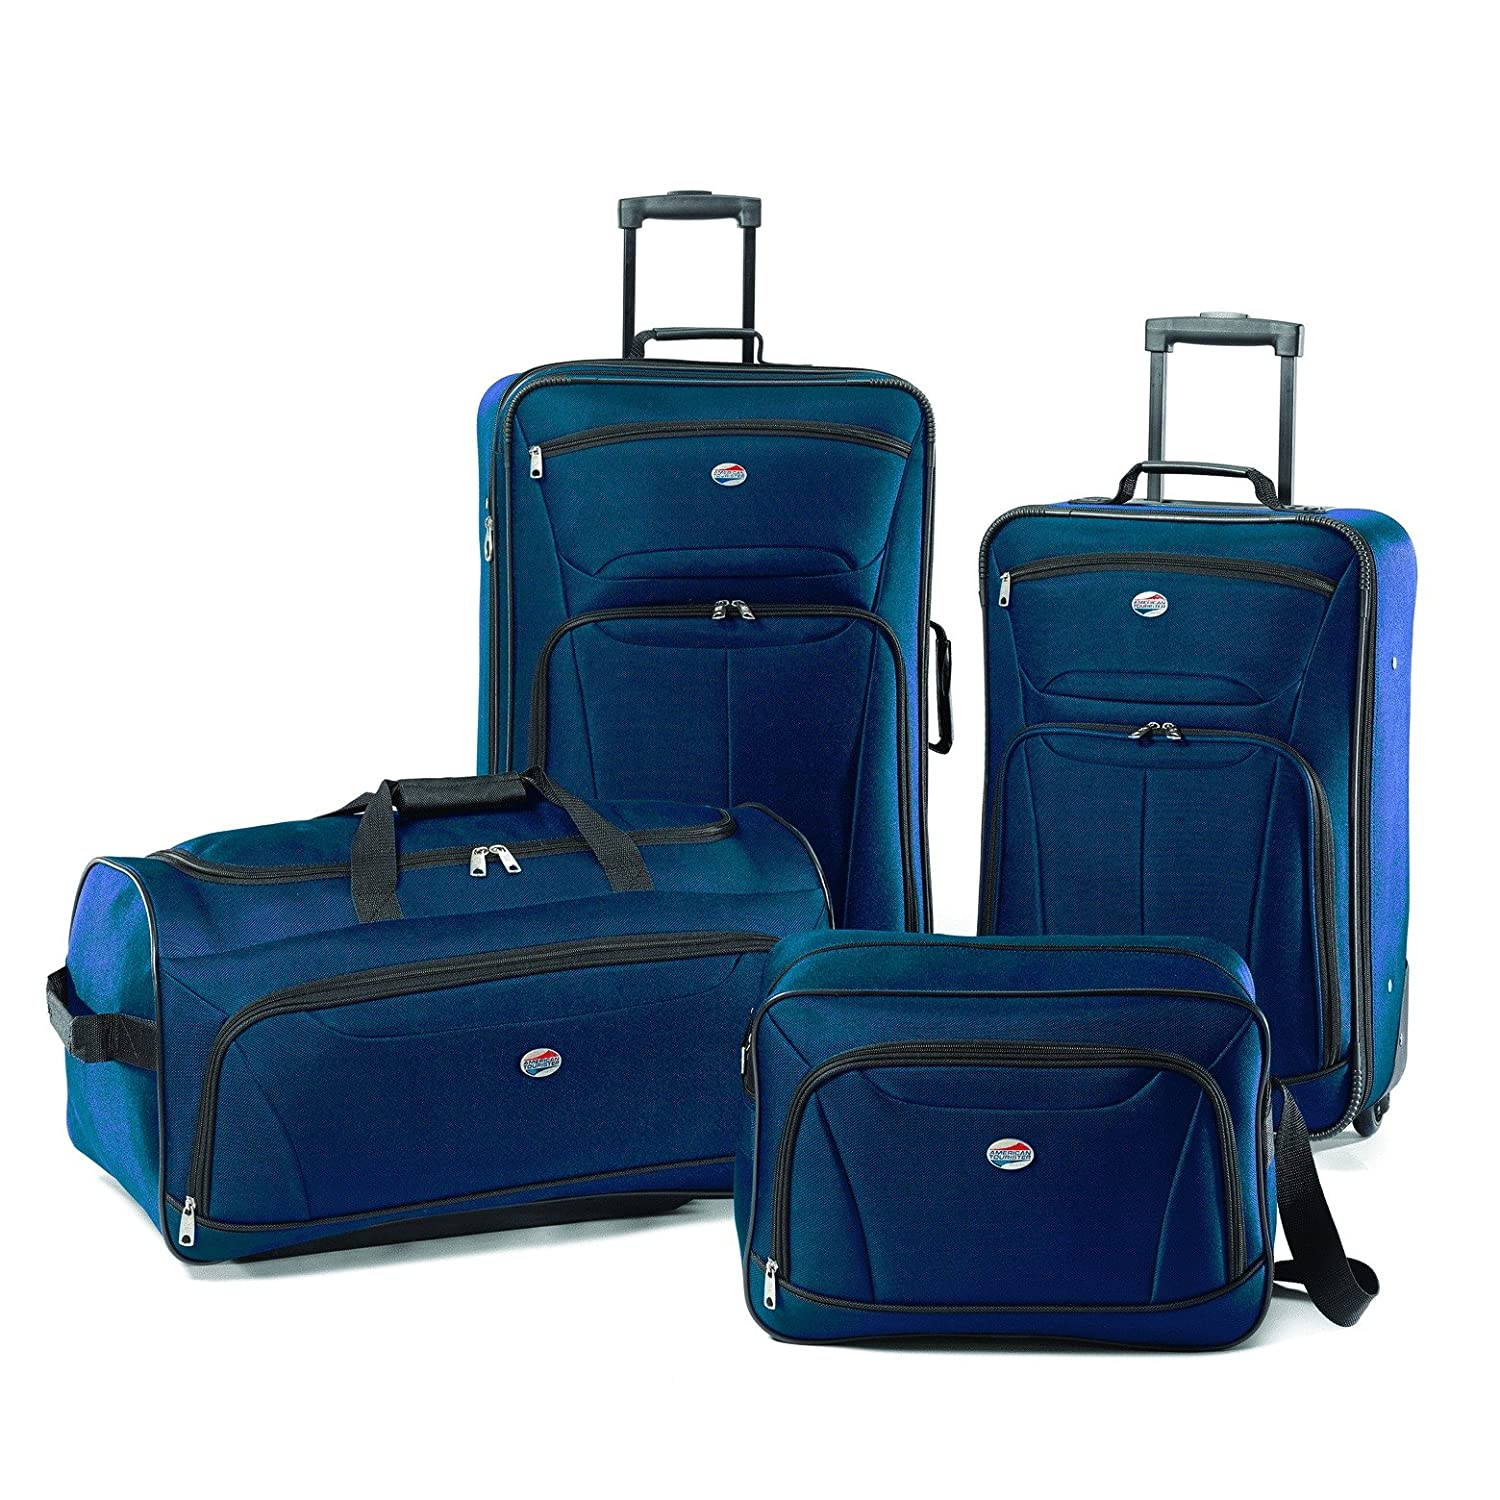 American Tourister Luggage Fieldbrook II 4 Piece Set, Black, One Size 56444